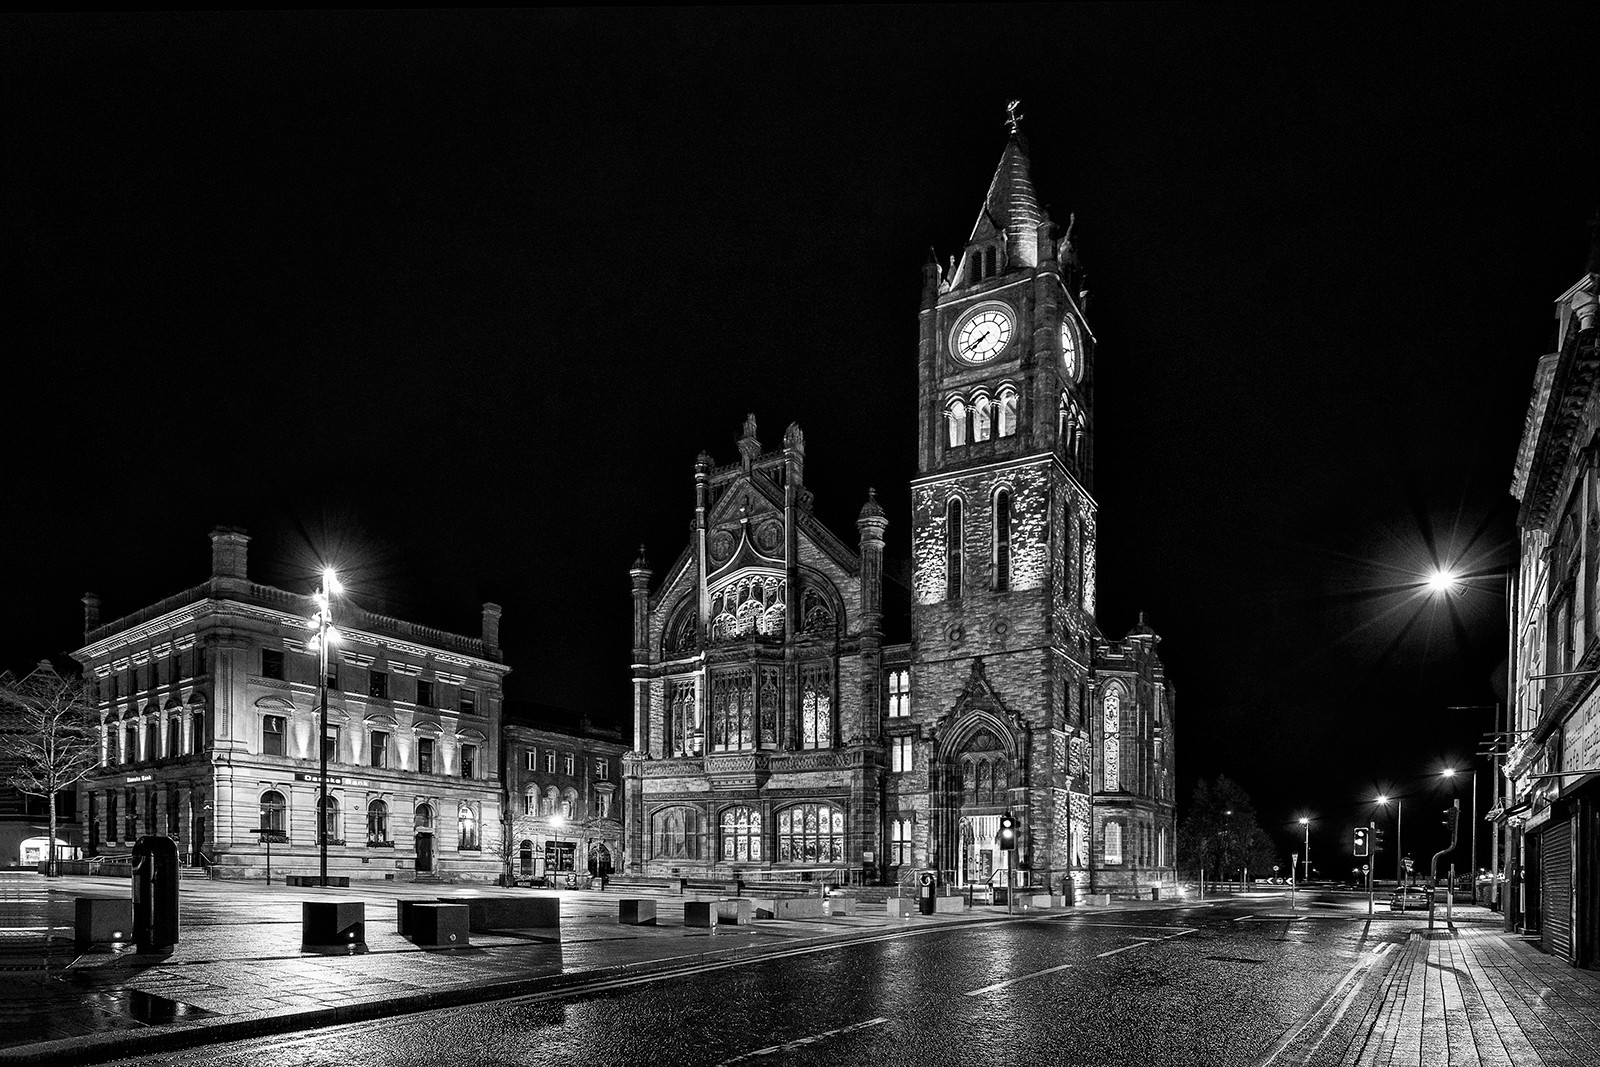 MONO - The Guildhall by Geradette McGuinness (11 marks)